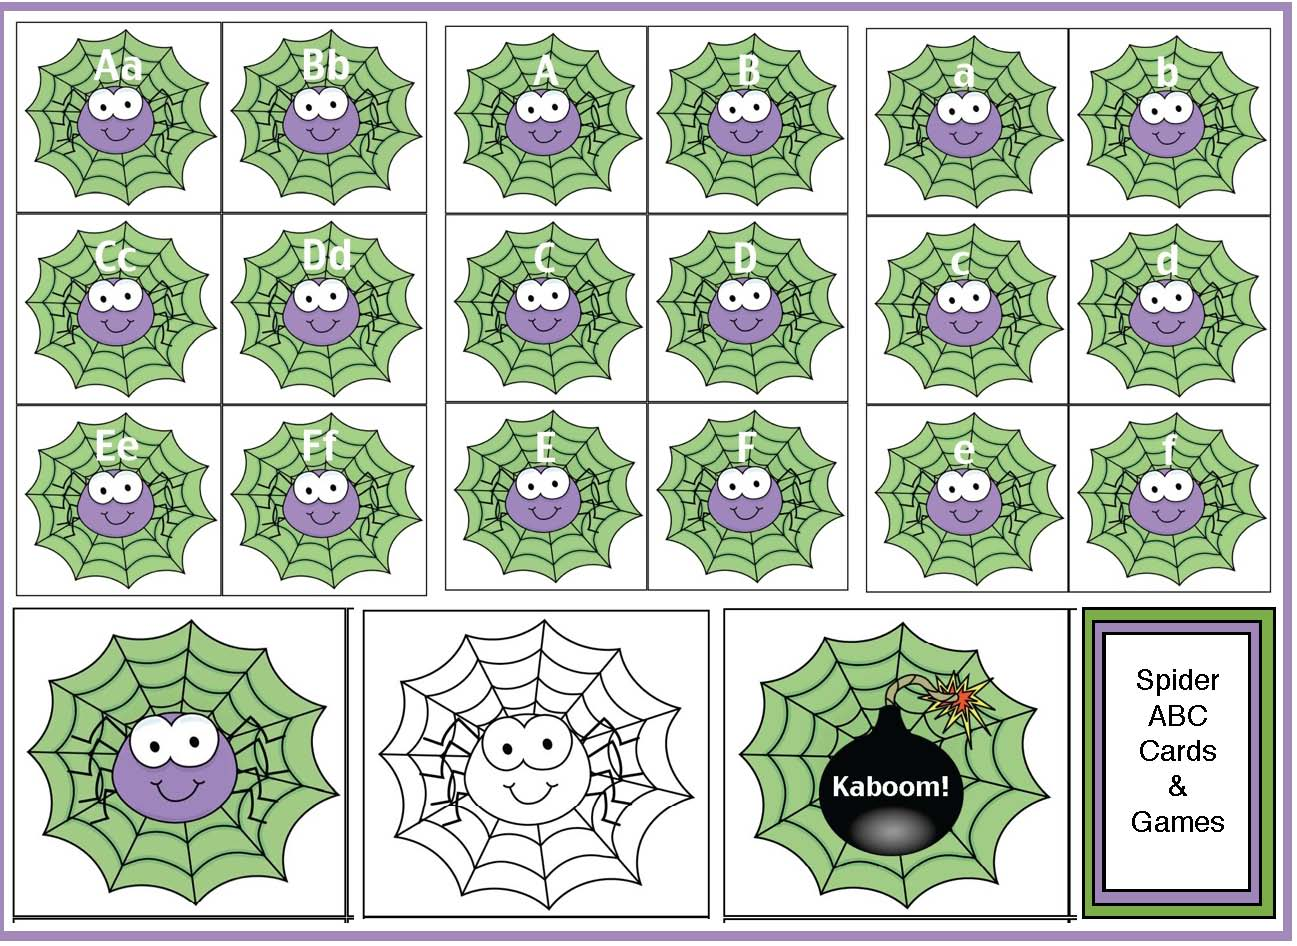 spider activities, common core spiders, spider crafts, spider arts and crafts, spider cards, alphabet lessons, alphabet games, spider games, spider centers, alphabet centers, alphabet assessments, common core assessments, alphabet worksheets, free alphabet worksheets, spider alphabet cards,